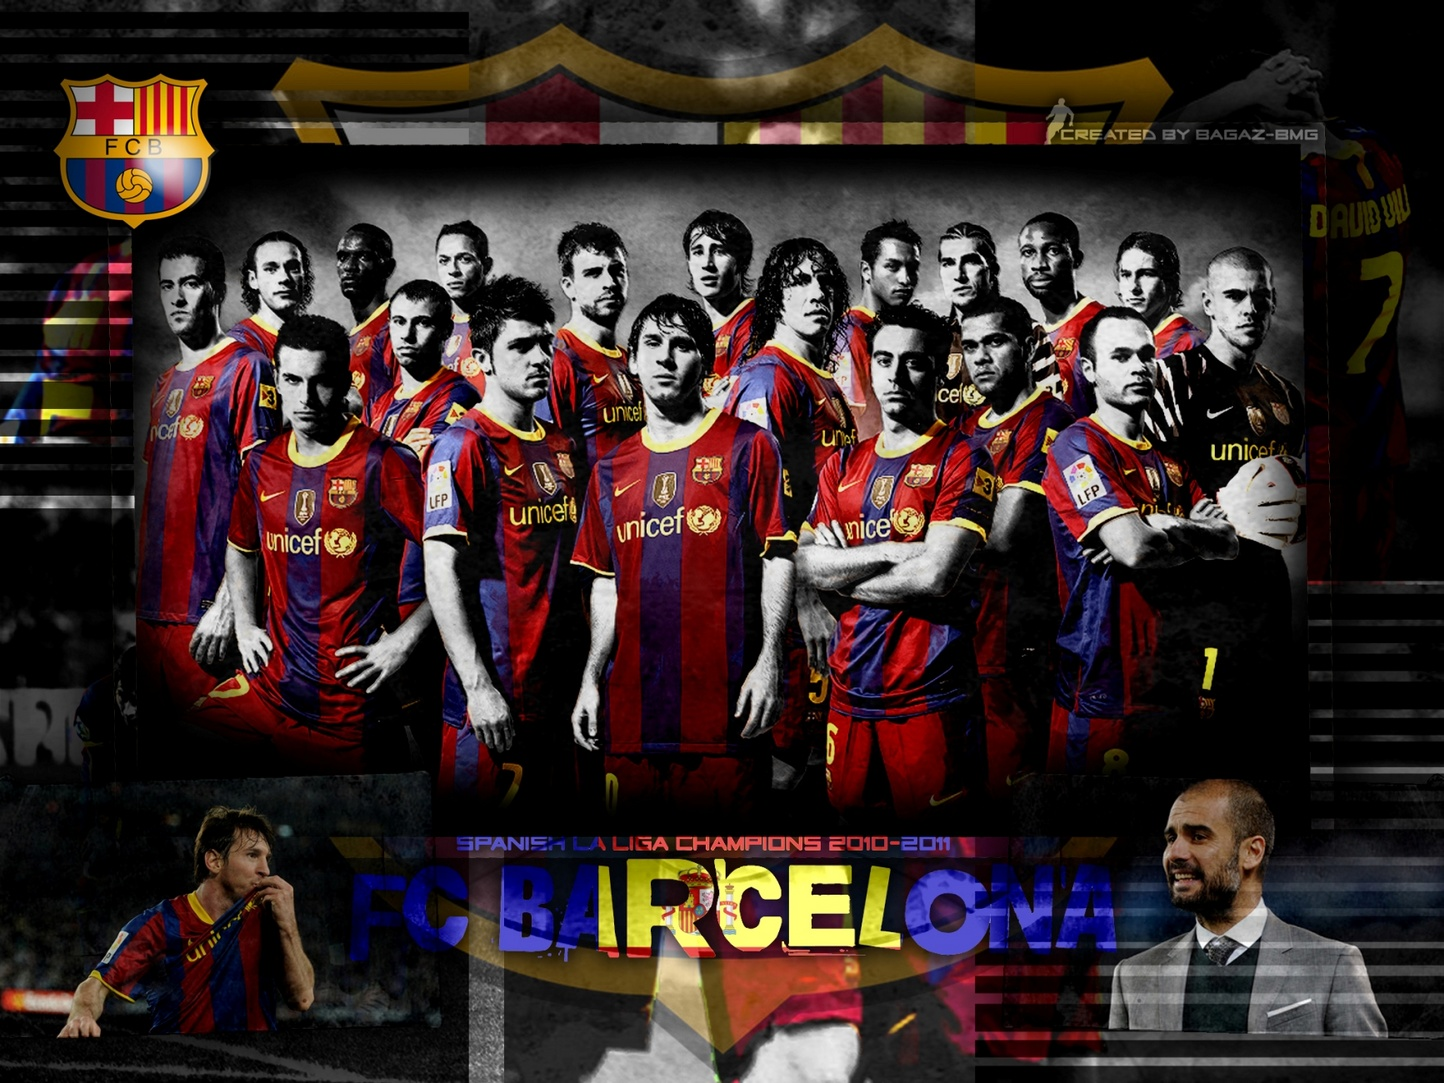 Barcelona Fc 2011 Wallpaper Hd Wallpapers Fc Barcelona Wallpapers